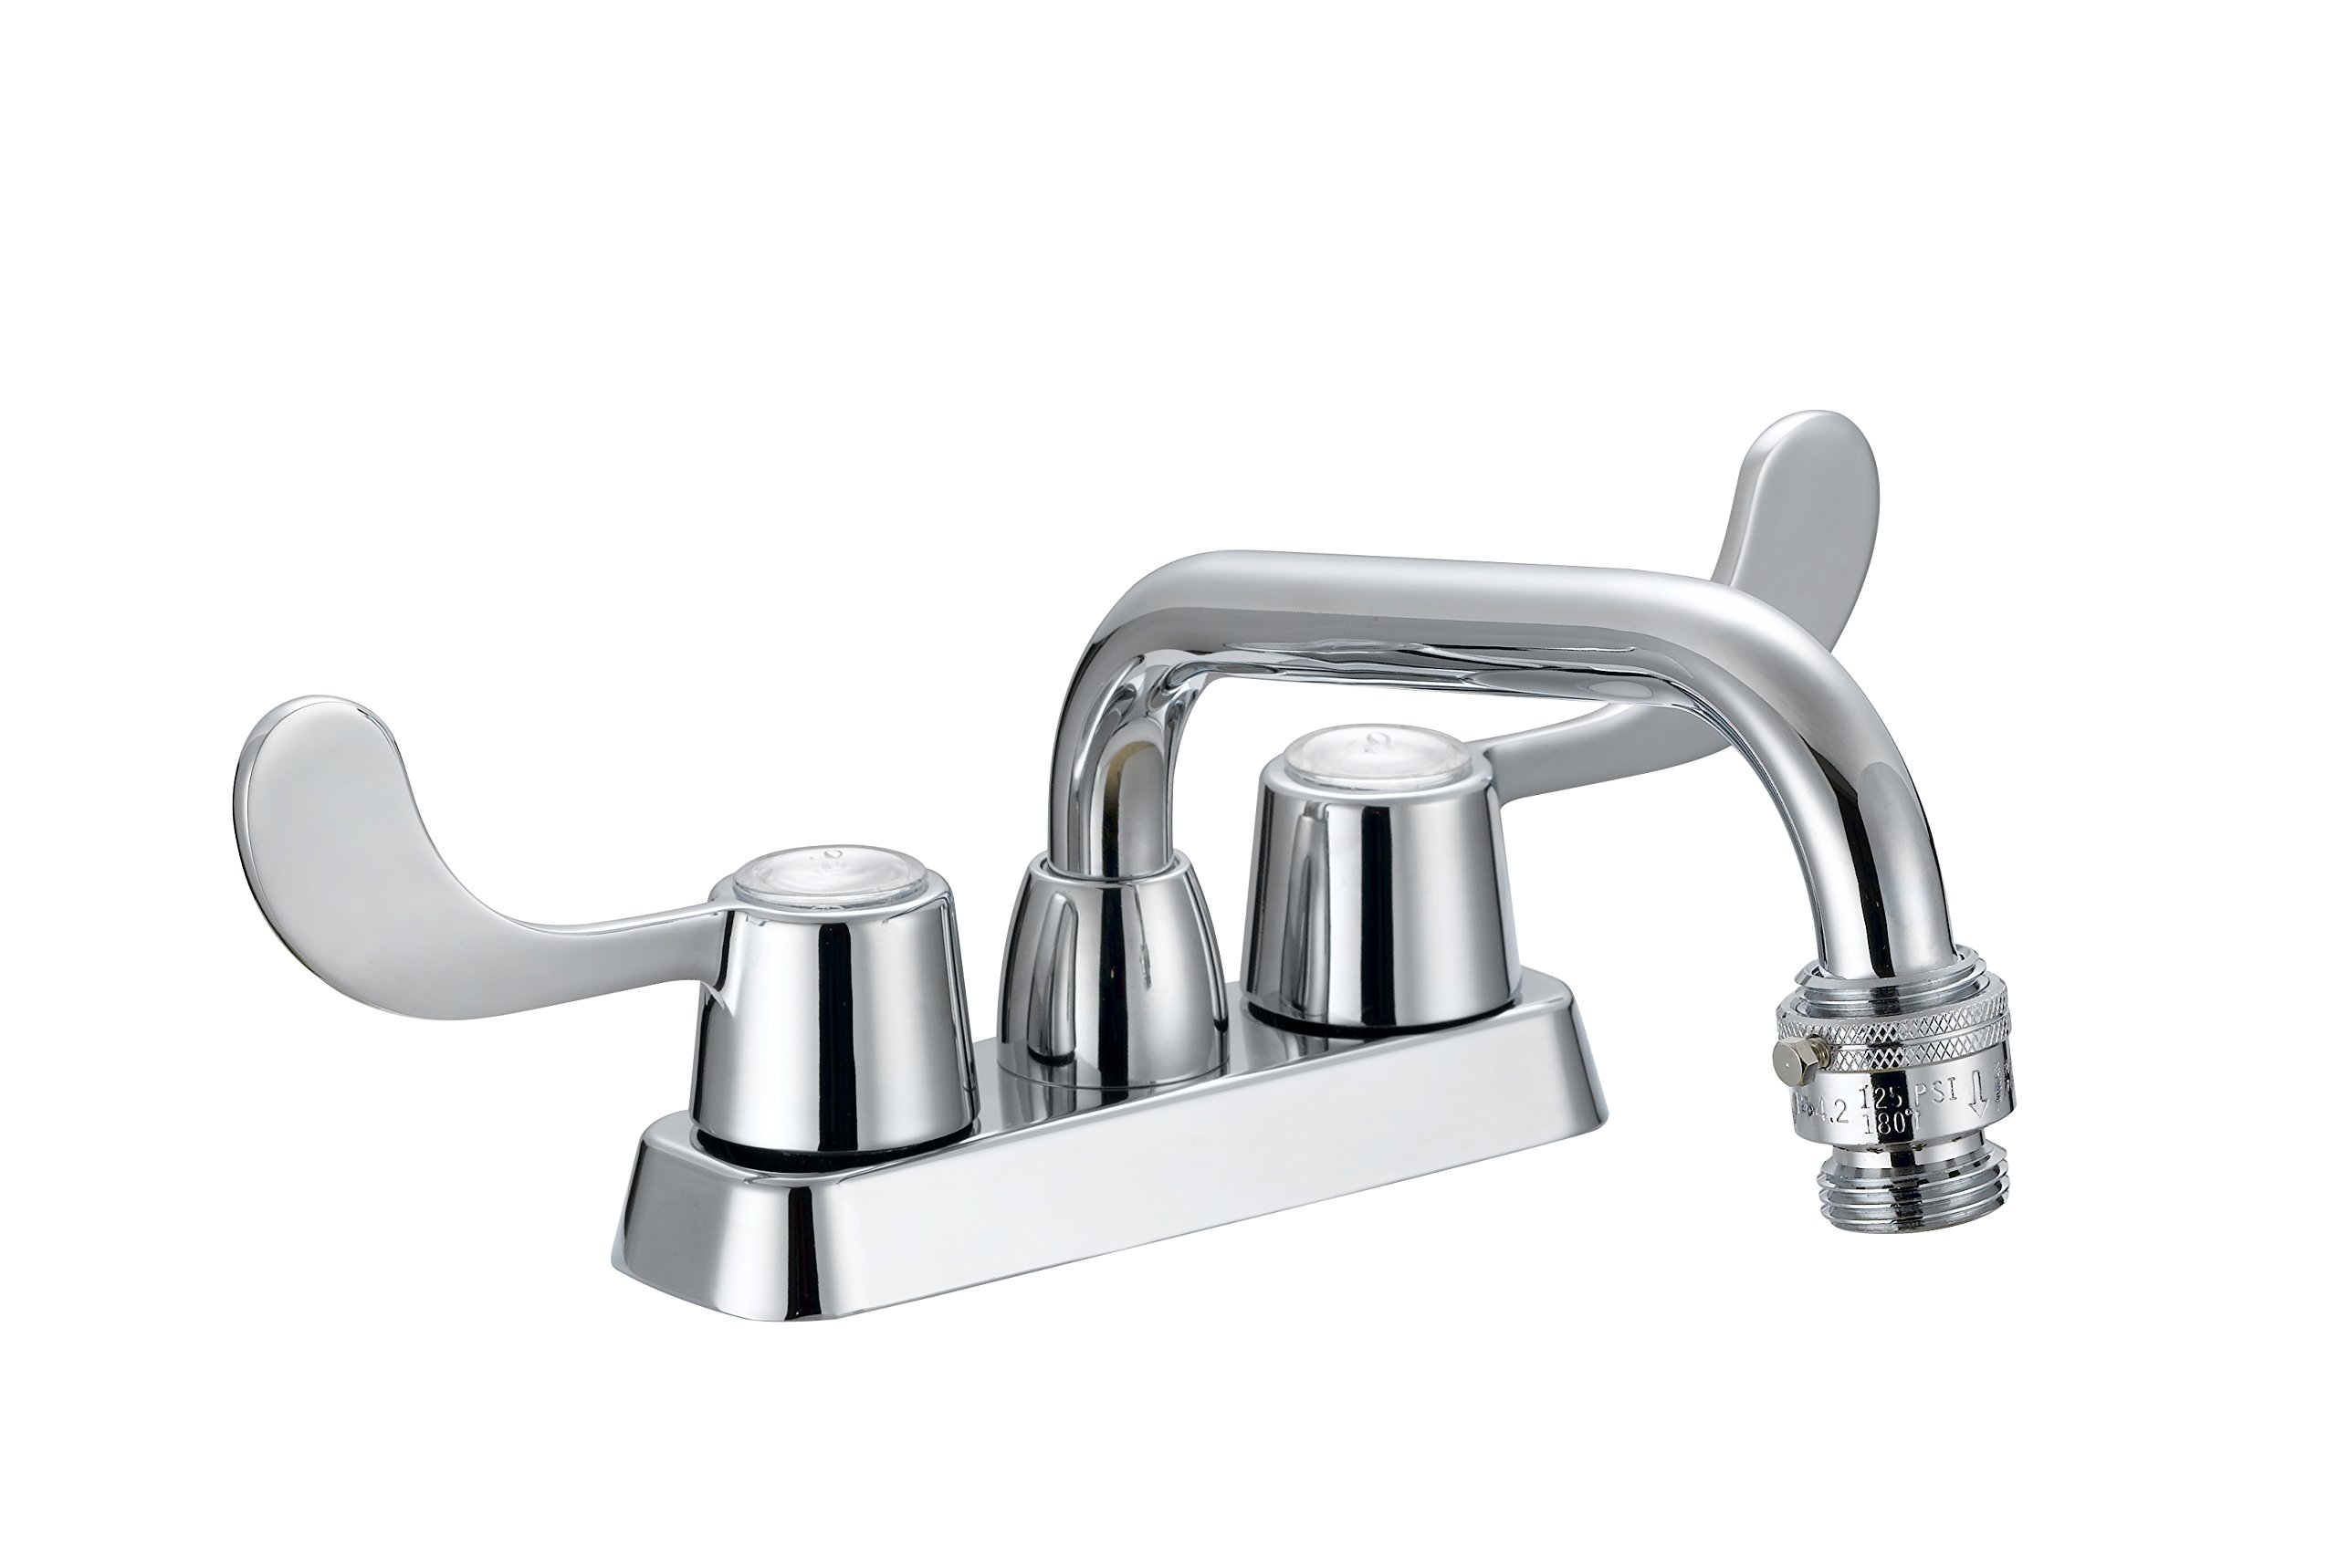 LDR 013 52280CP Laundry Faucet, Heavy Duty, Double Handles, Vacuum Breaker, Chrome by LDR Industries